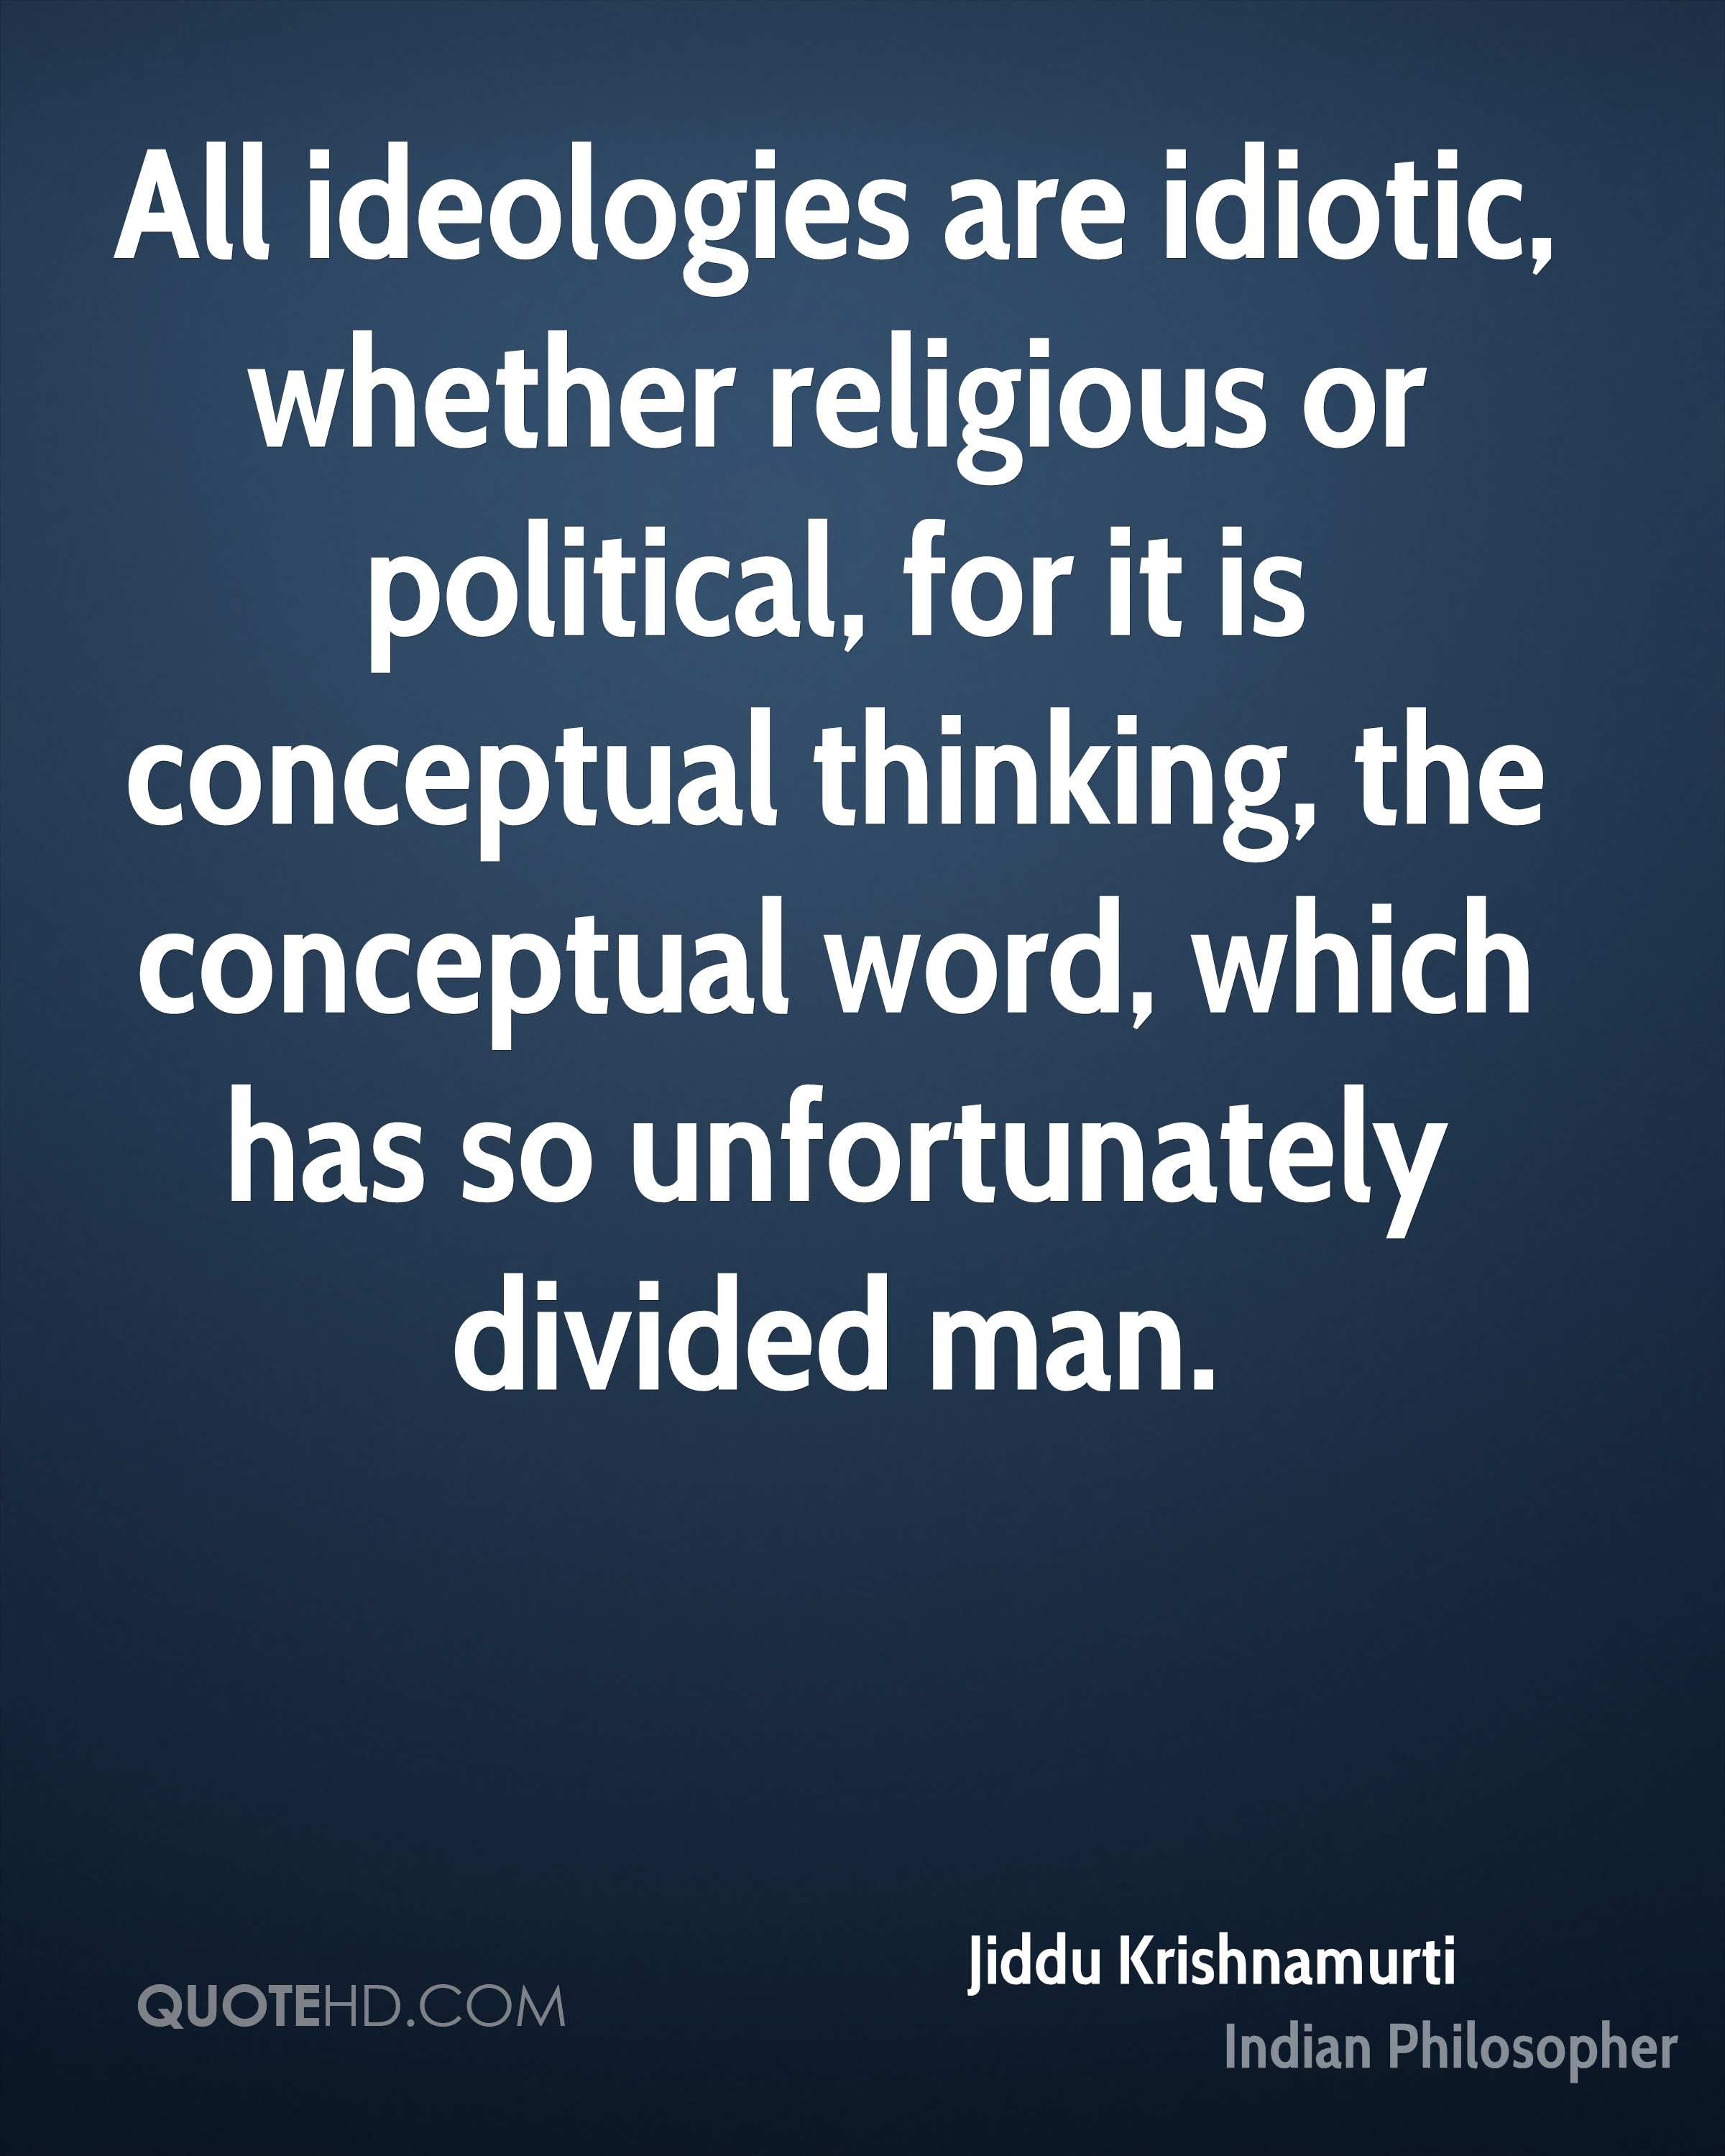 All ideologies are idiotic, whether religious or political, for it is conceptual thinking, the conceptual word, which has so unfortunately divided man.